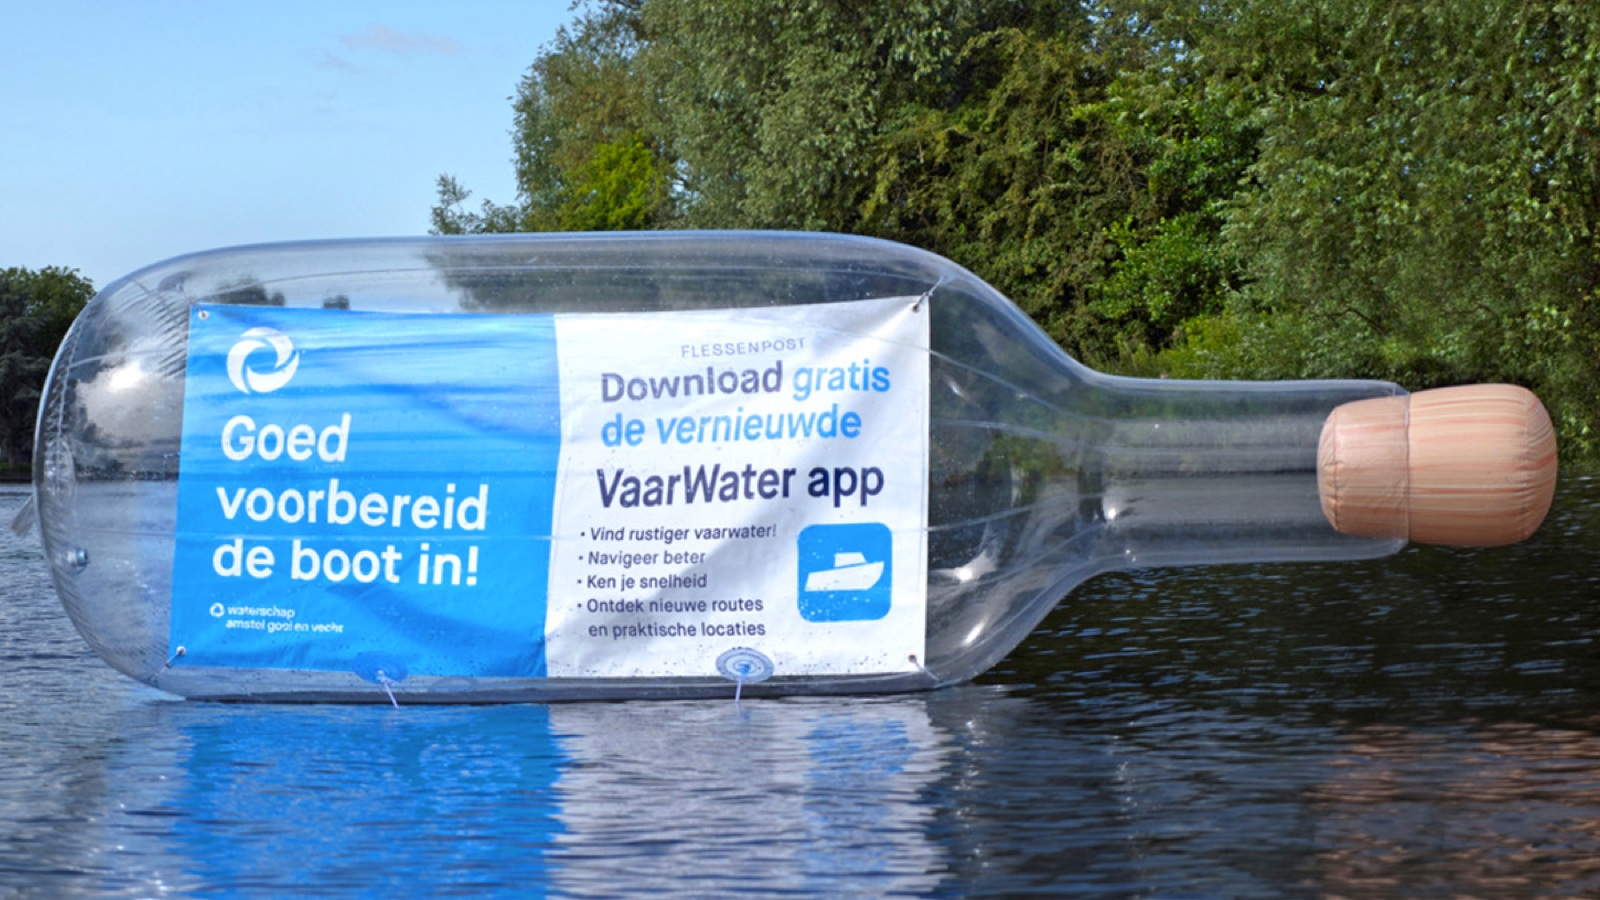 Opblaasbare fles - inflatable bottle - flessnepost activatie - waternet - Publi air